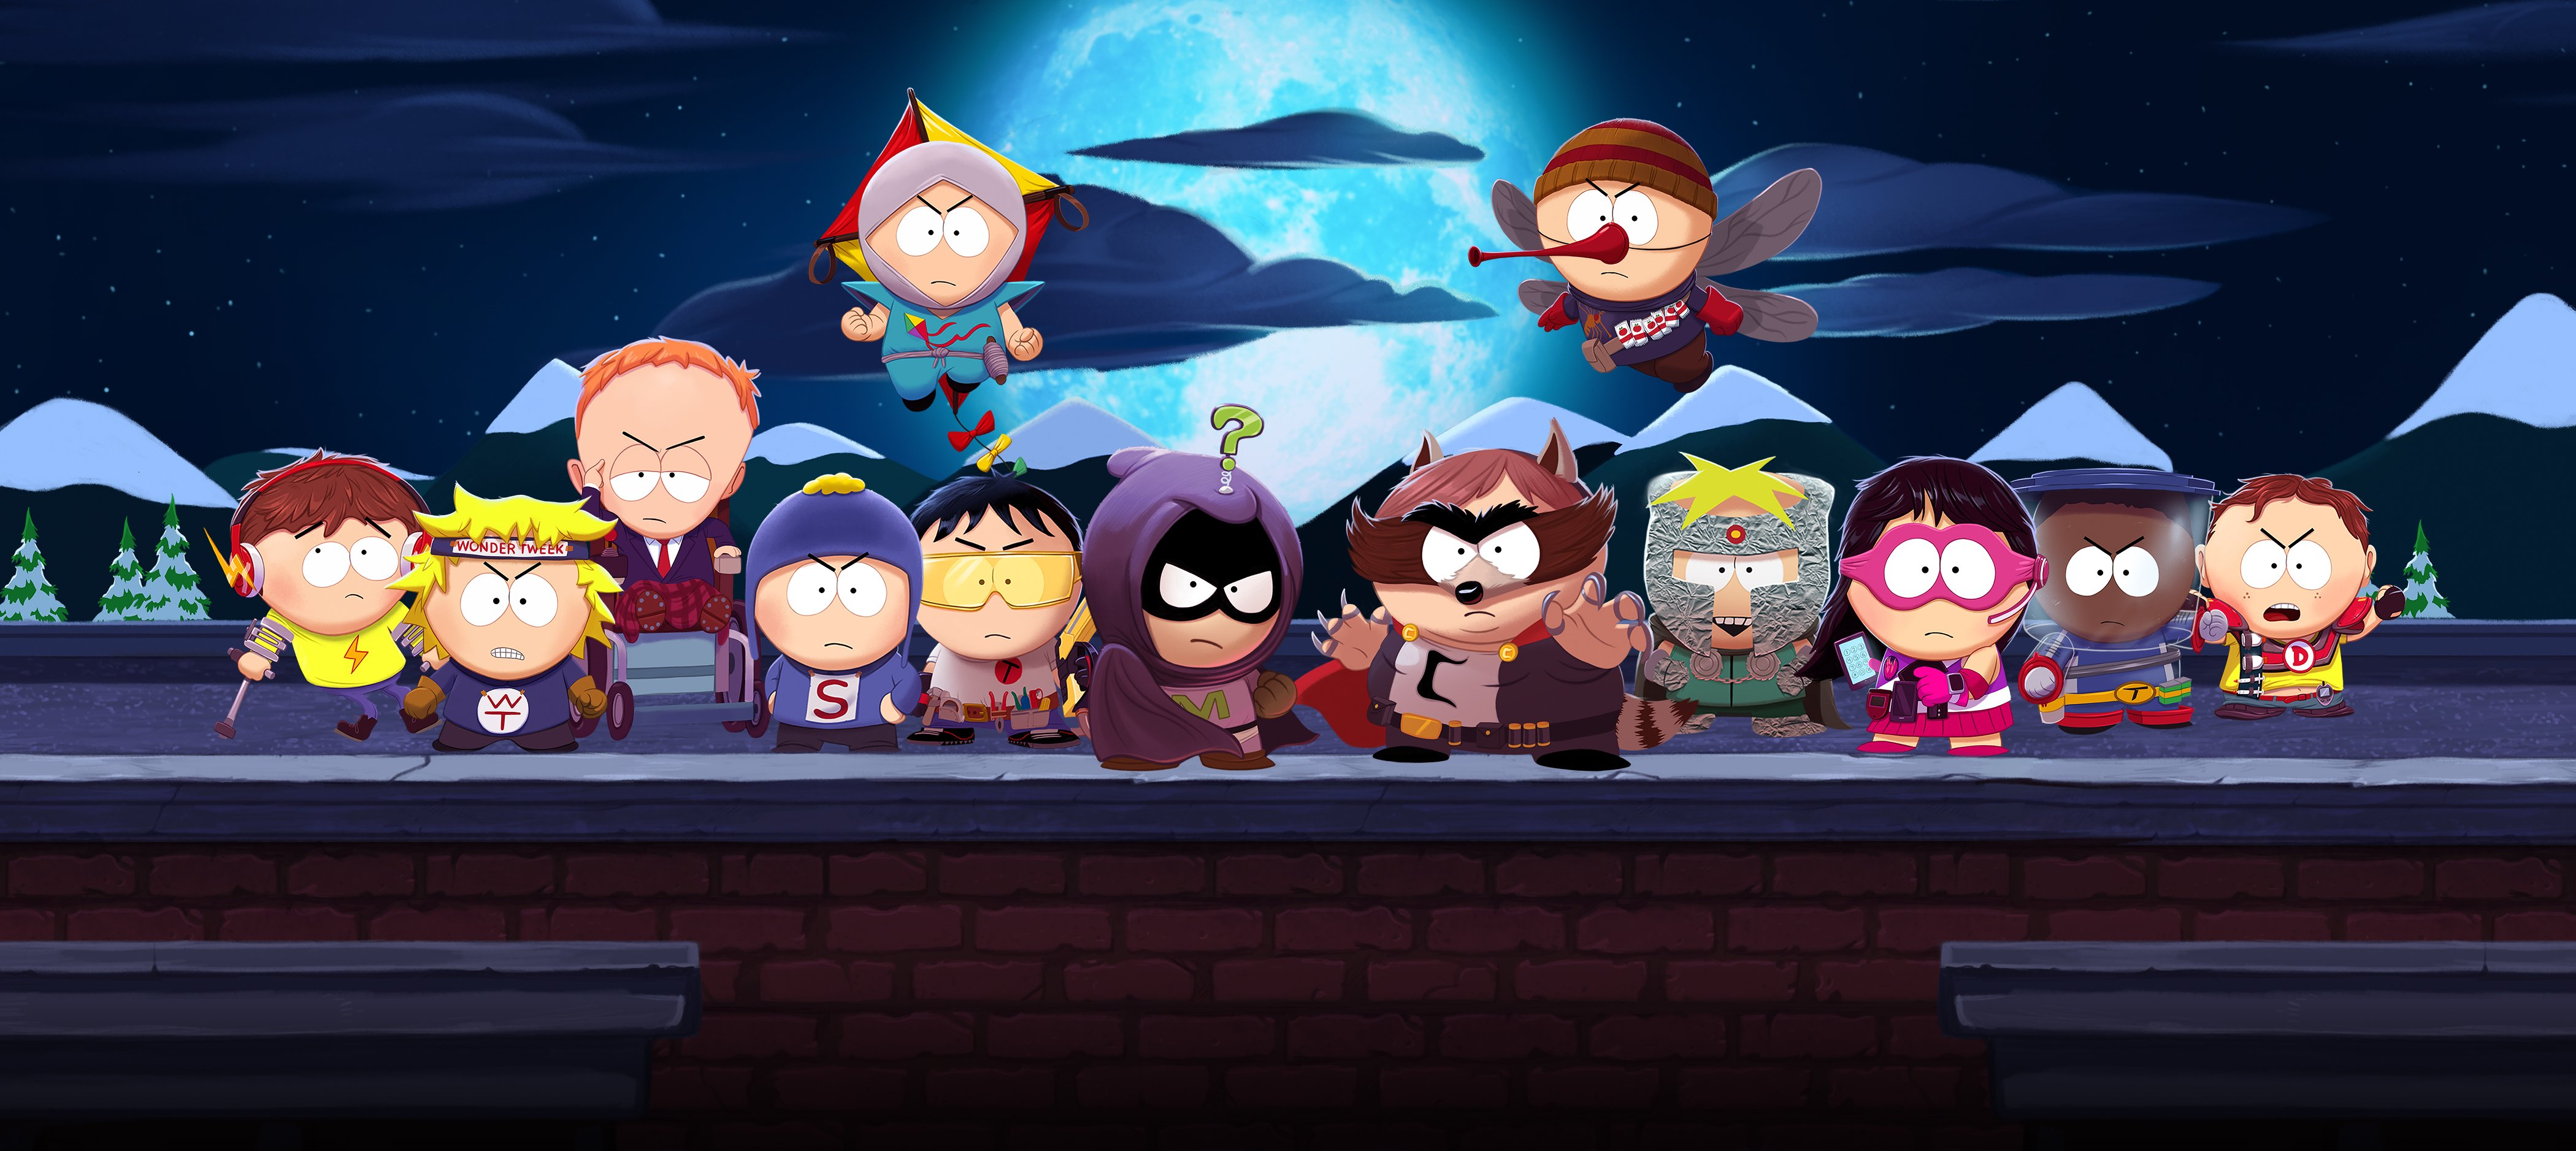 south-park-the-fractured-but-whole-rpg-adventure-ubisoft-san-francisco-playstation-xbox-pc